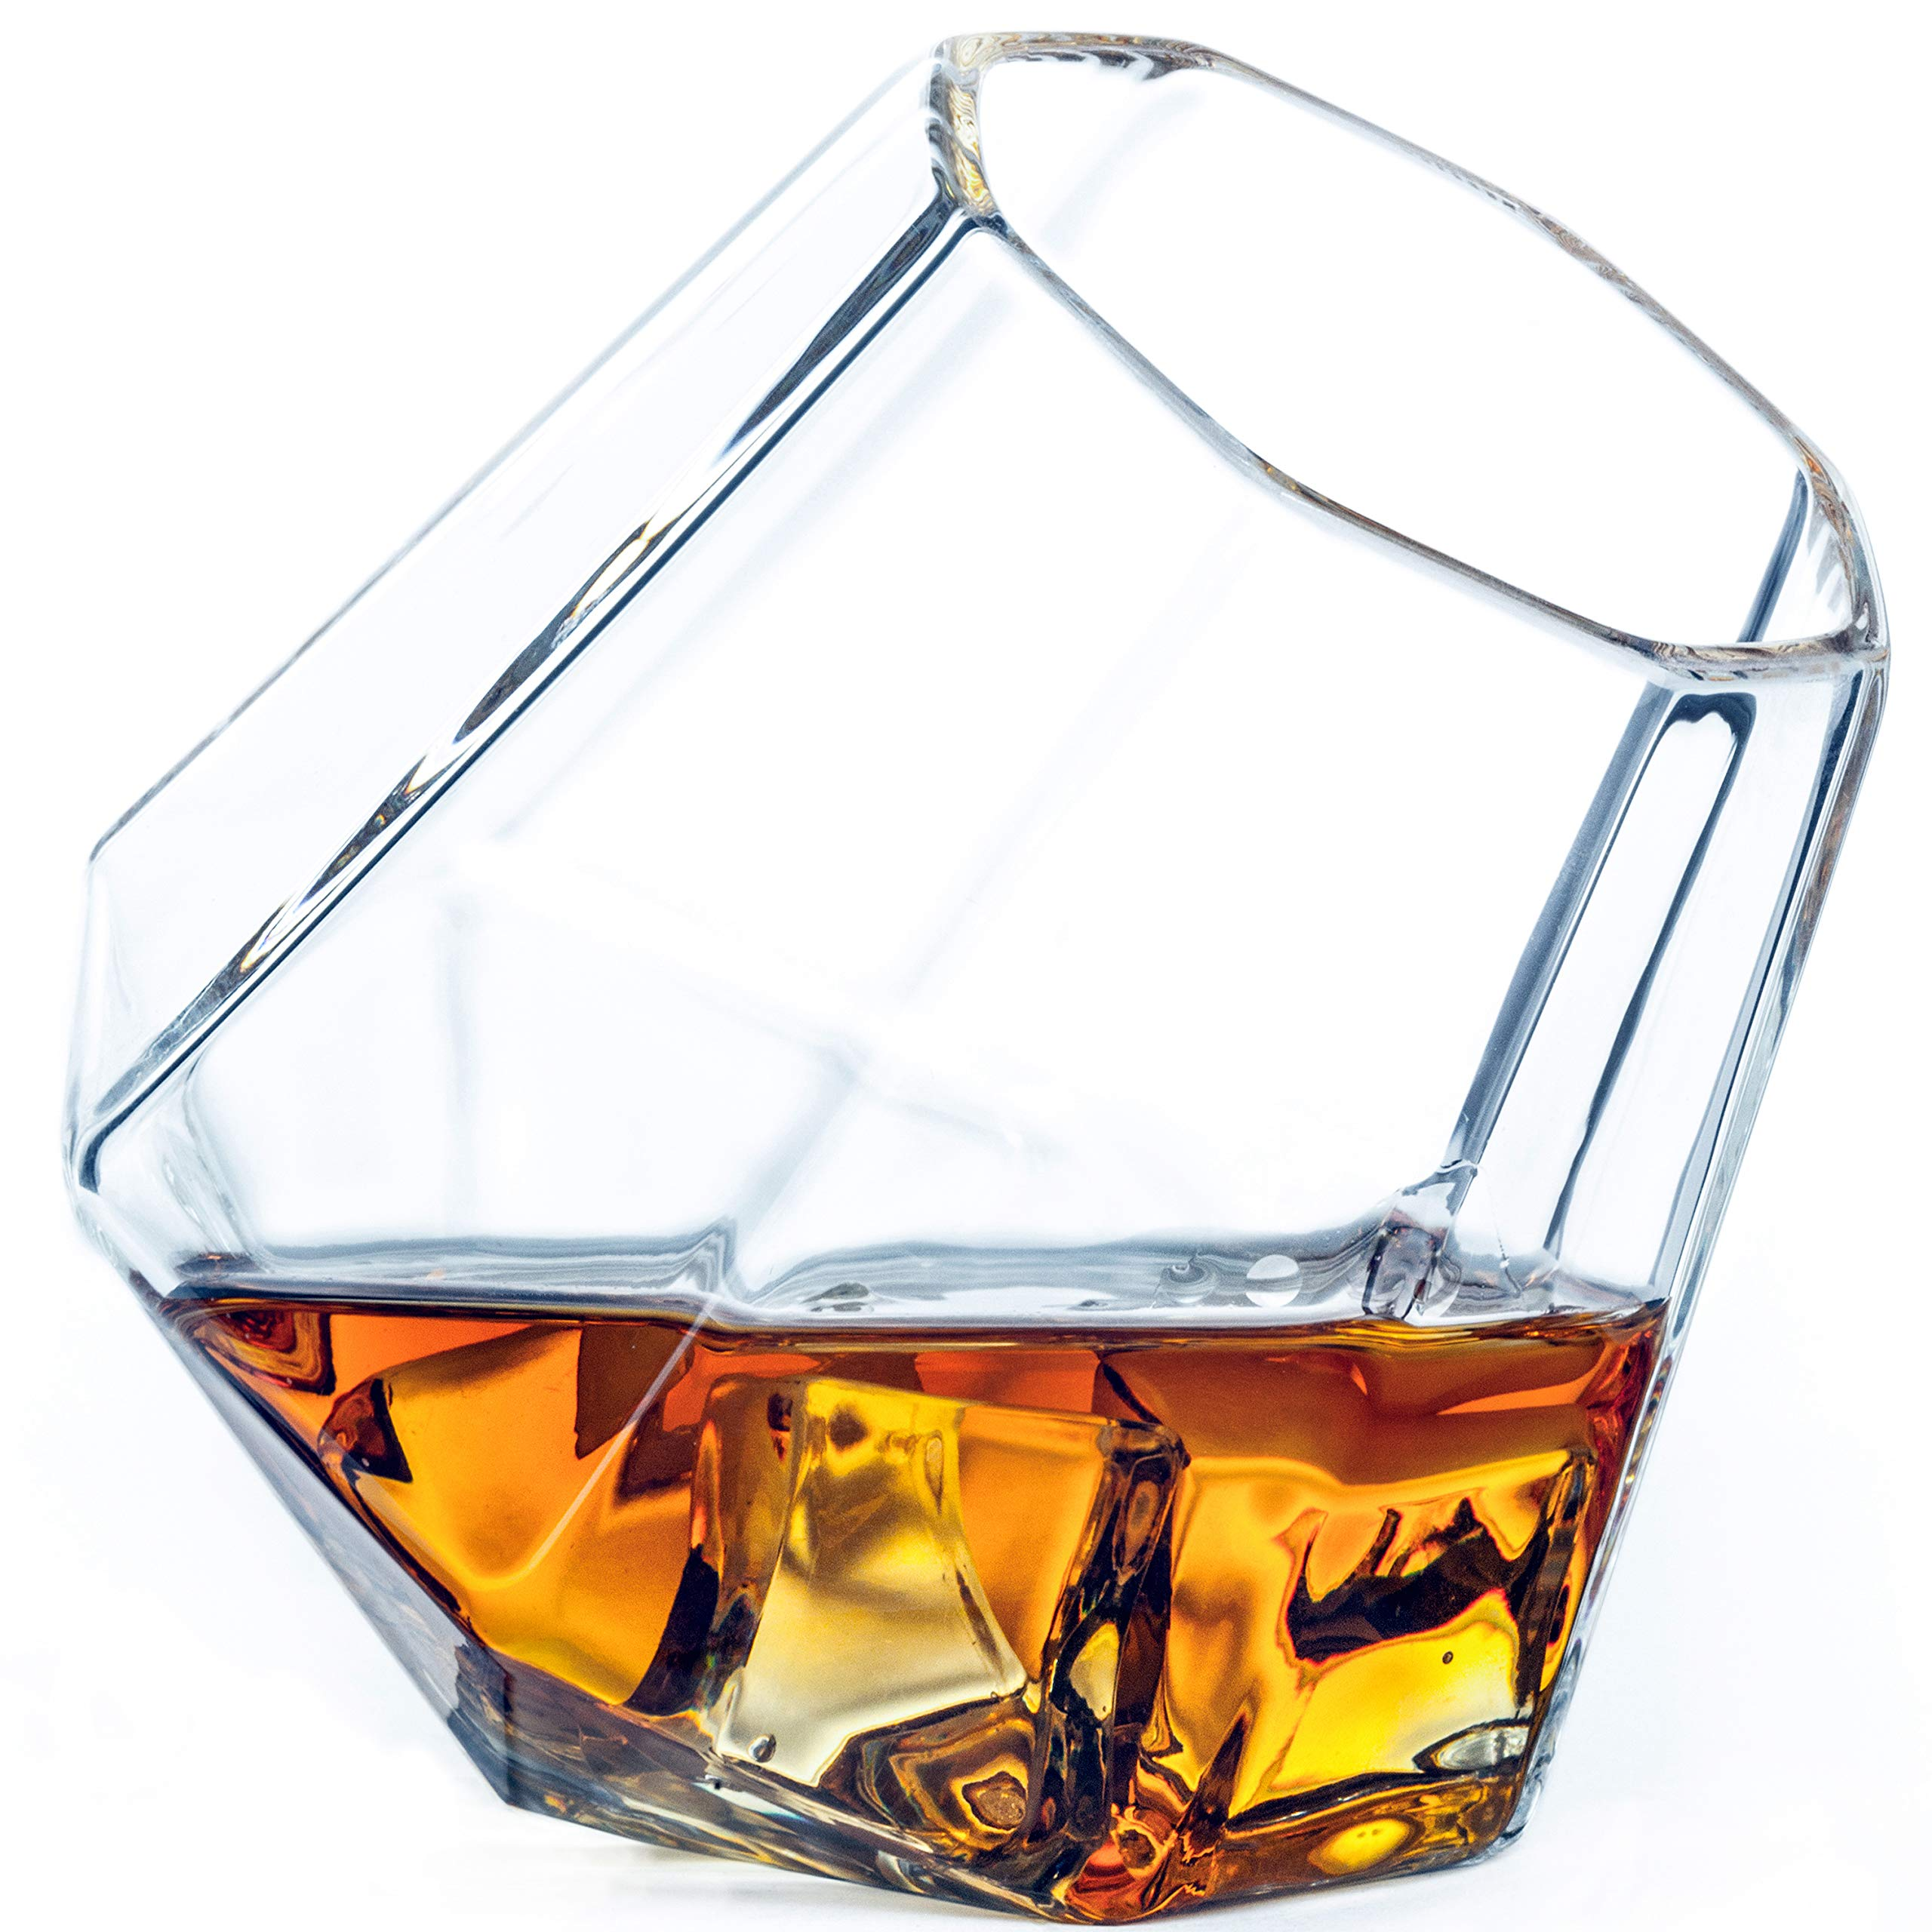 Diamond Whiskey Glasses, 10-Ounce Tilted Tumblers, Gift Boxed - Set of 2